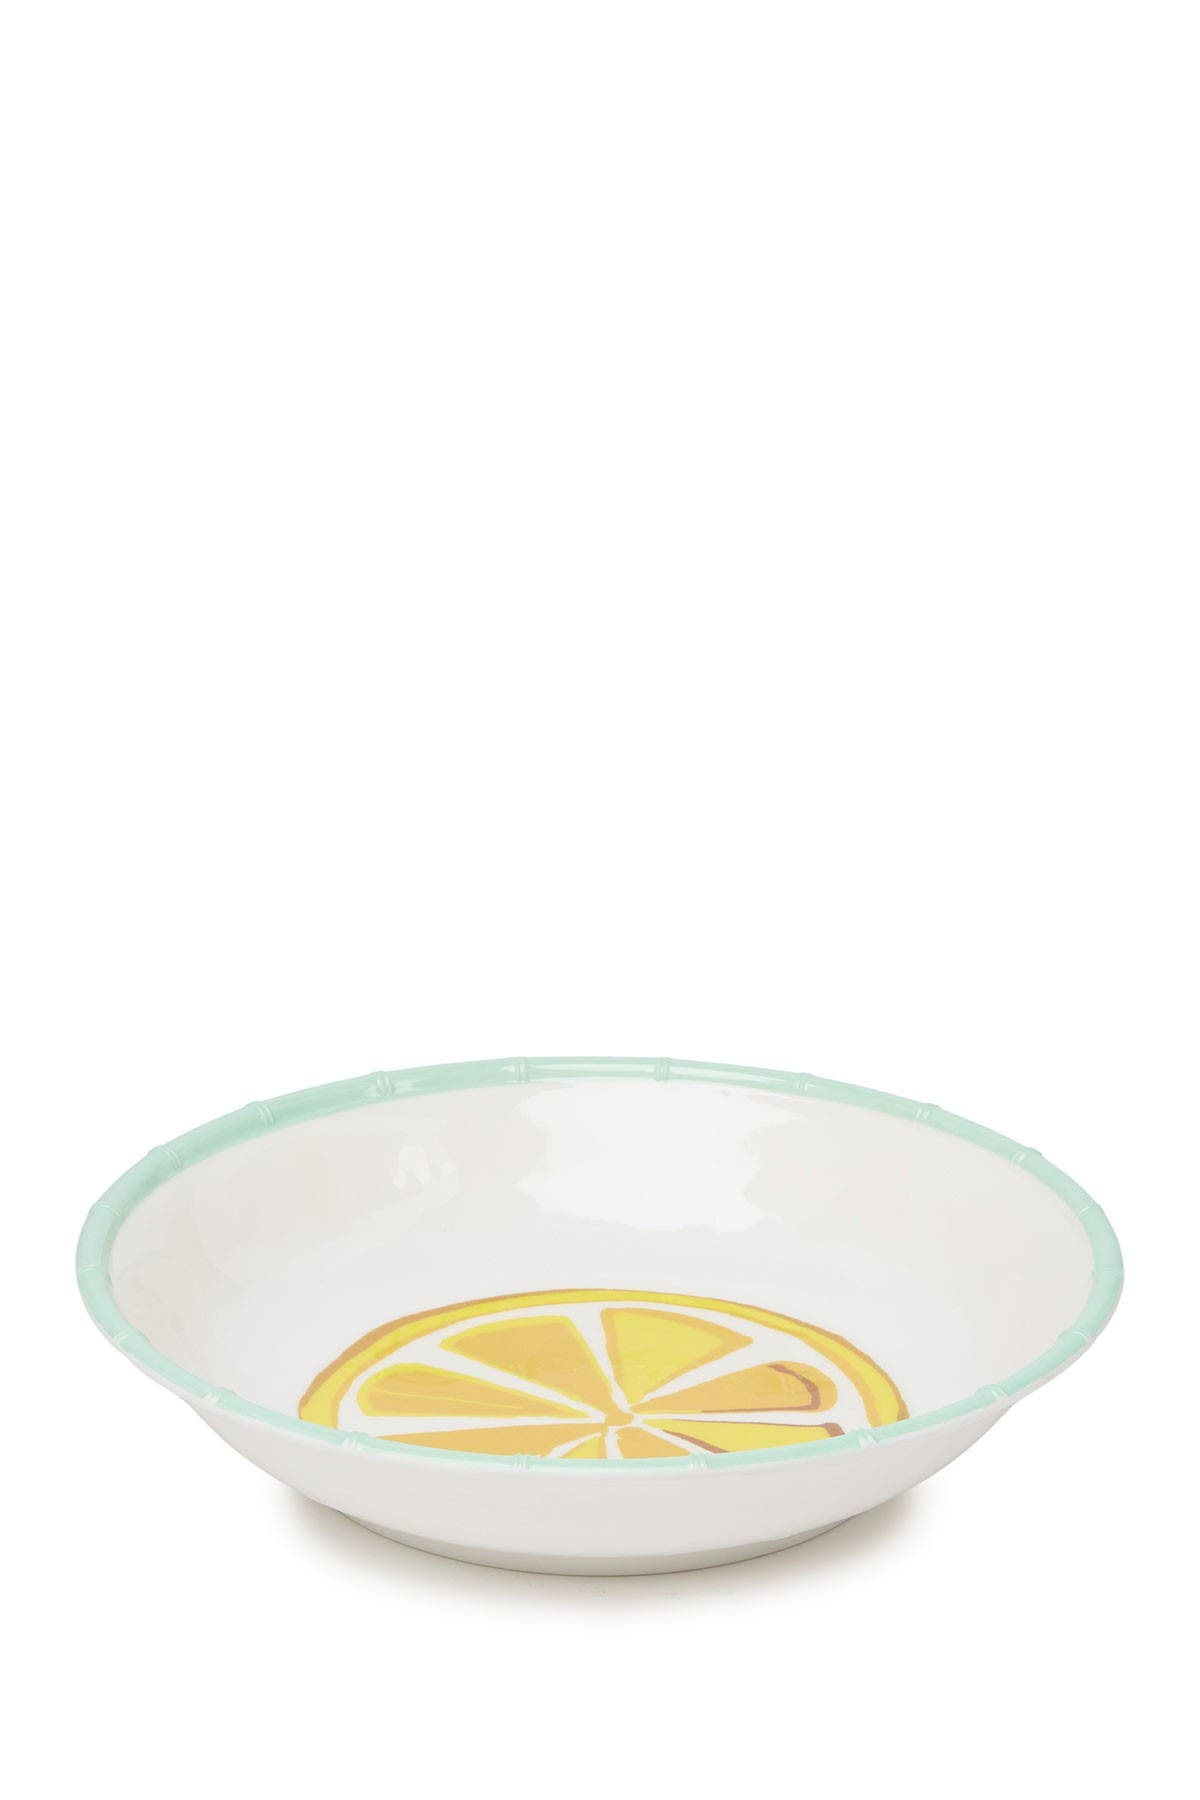 Image of Trina Turk Lemons Serving Bowl